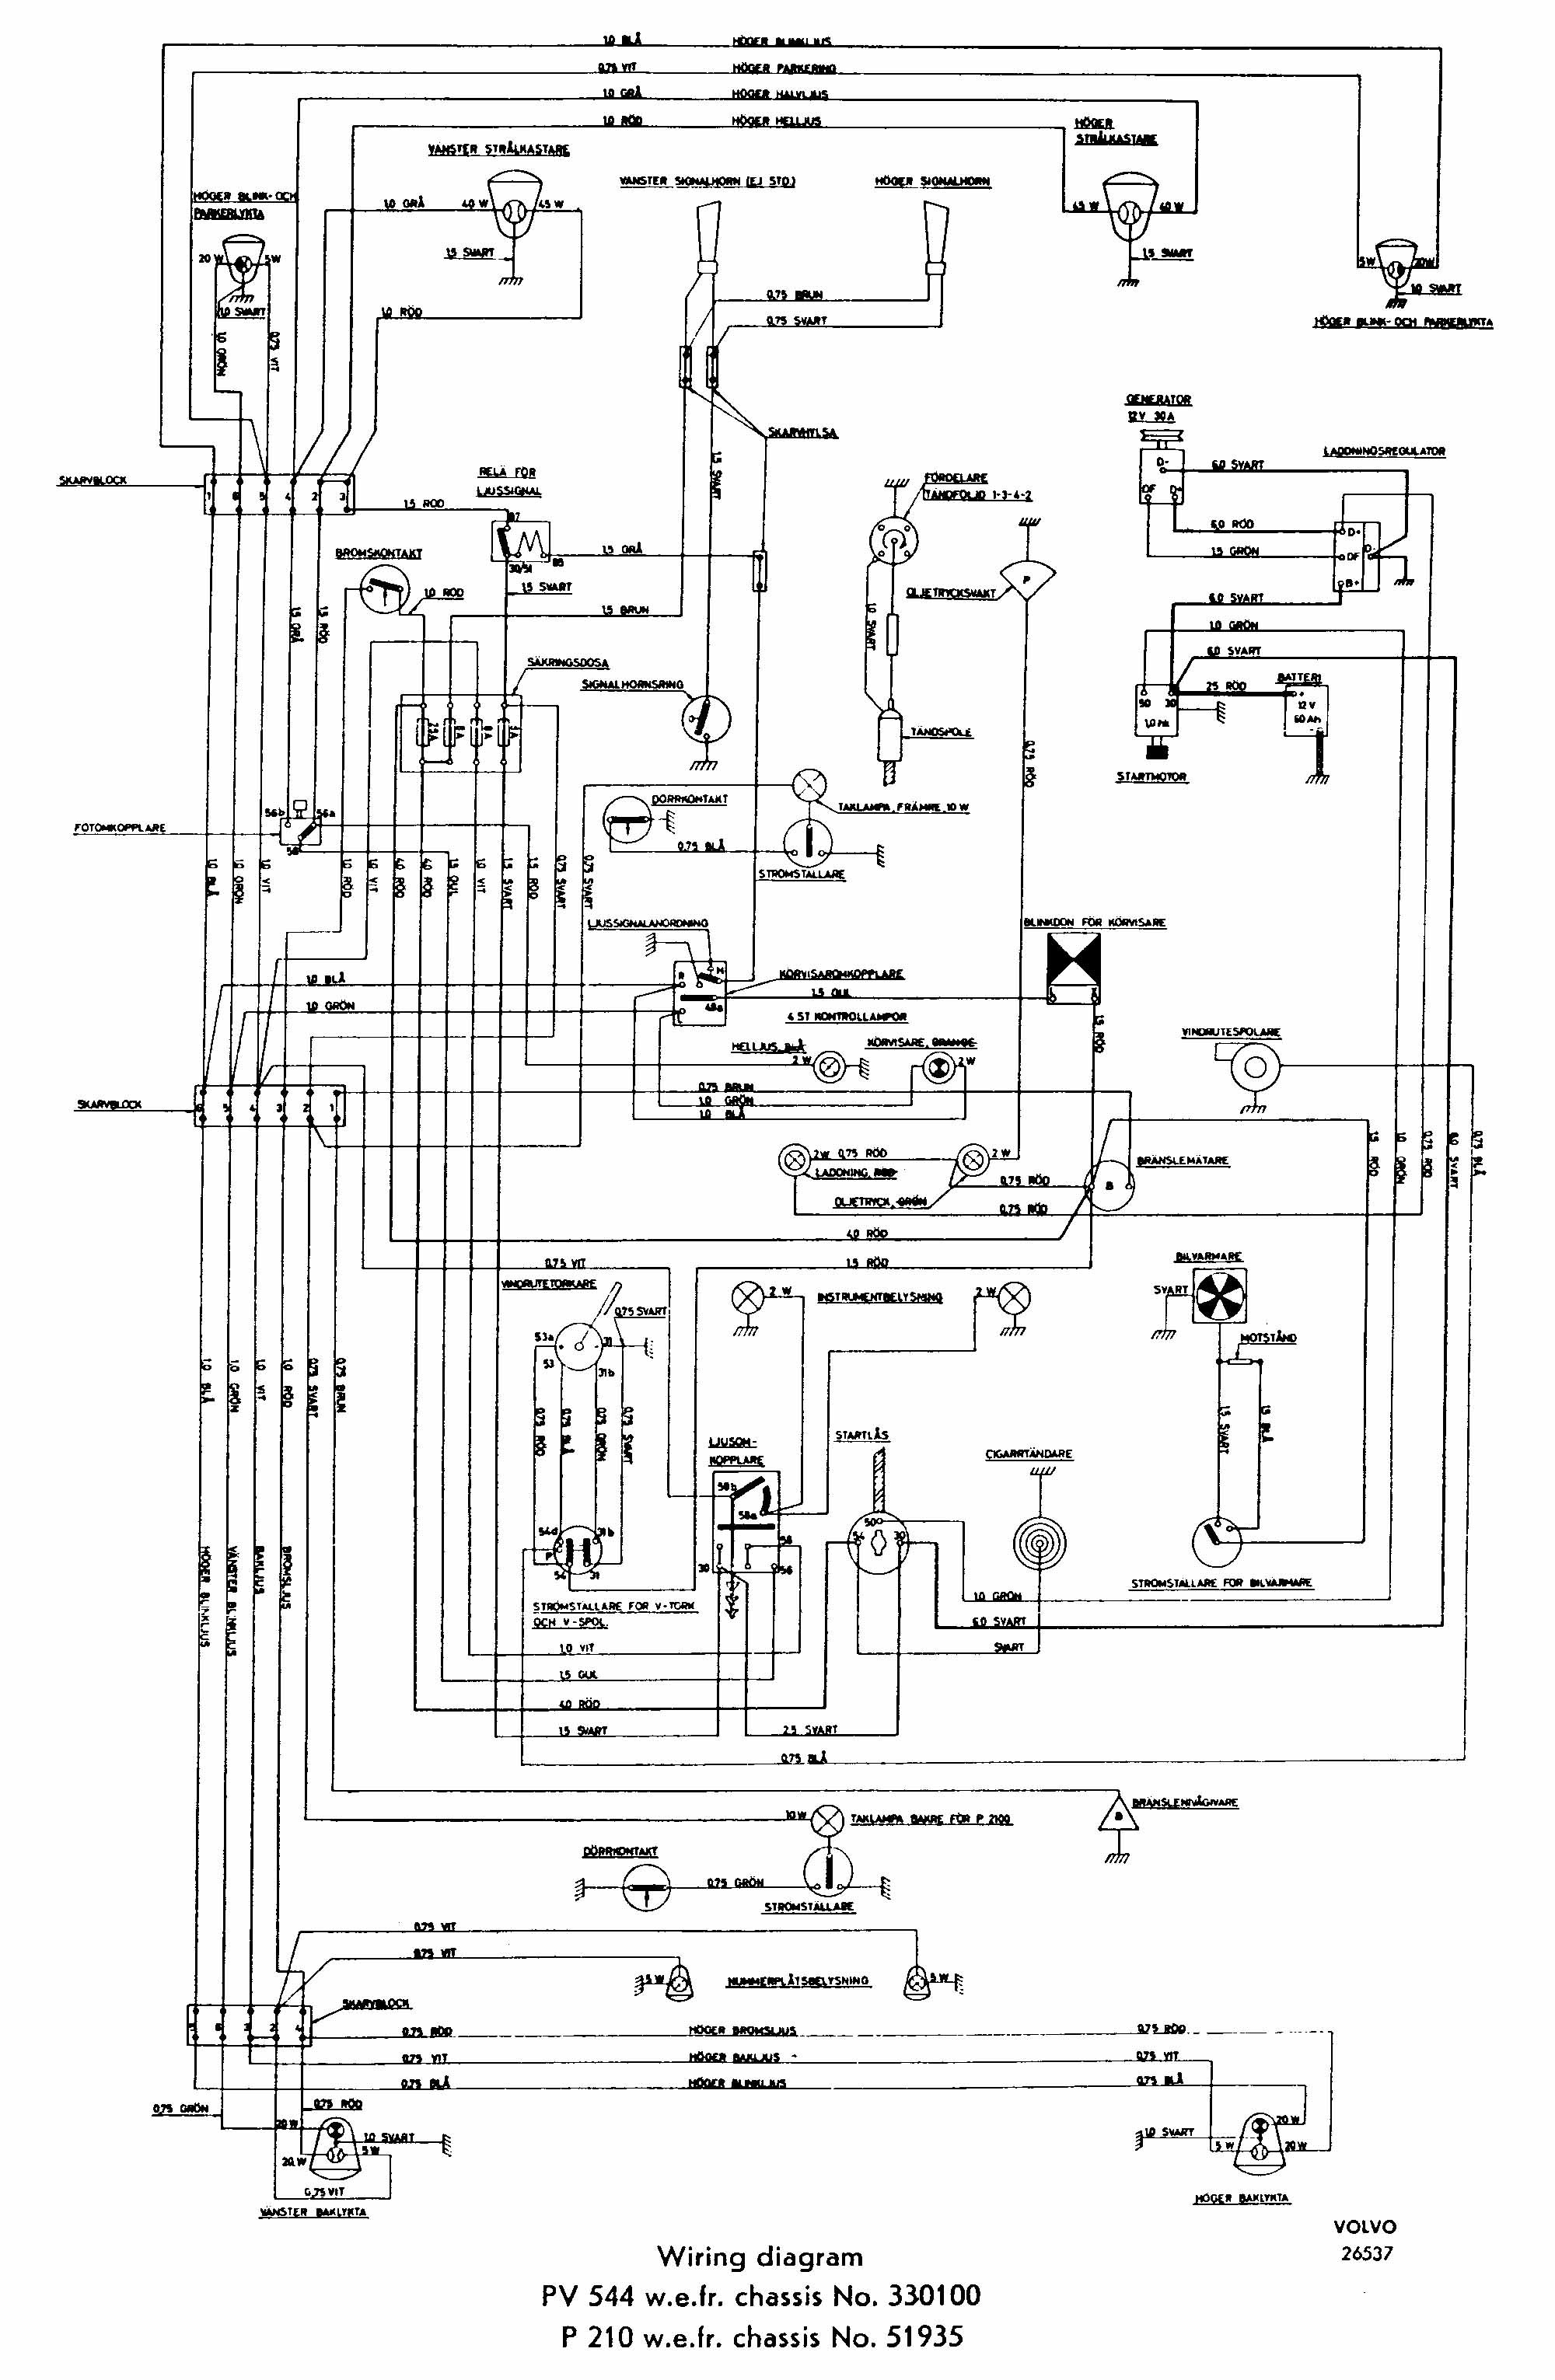 volvo s40 fuse box 2007 wiring diagram